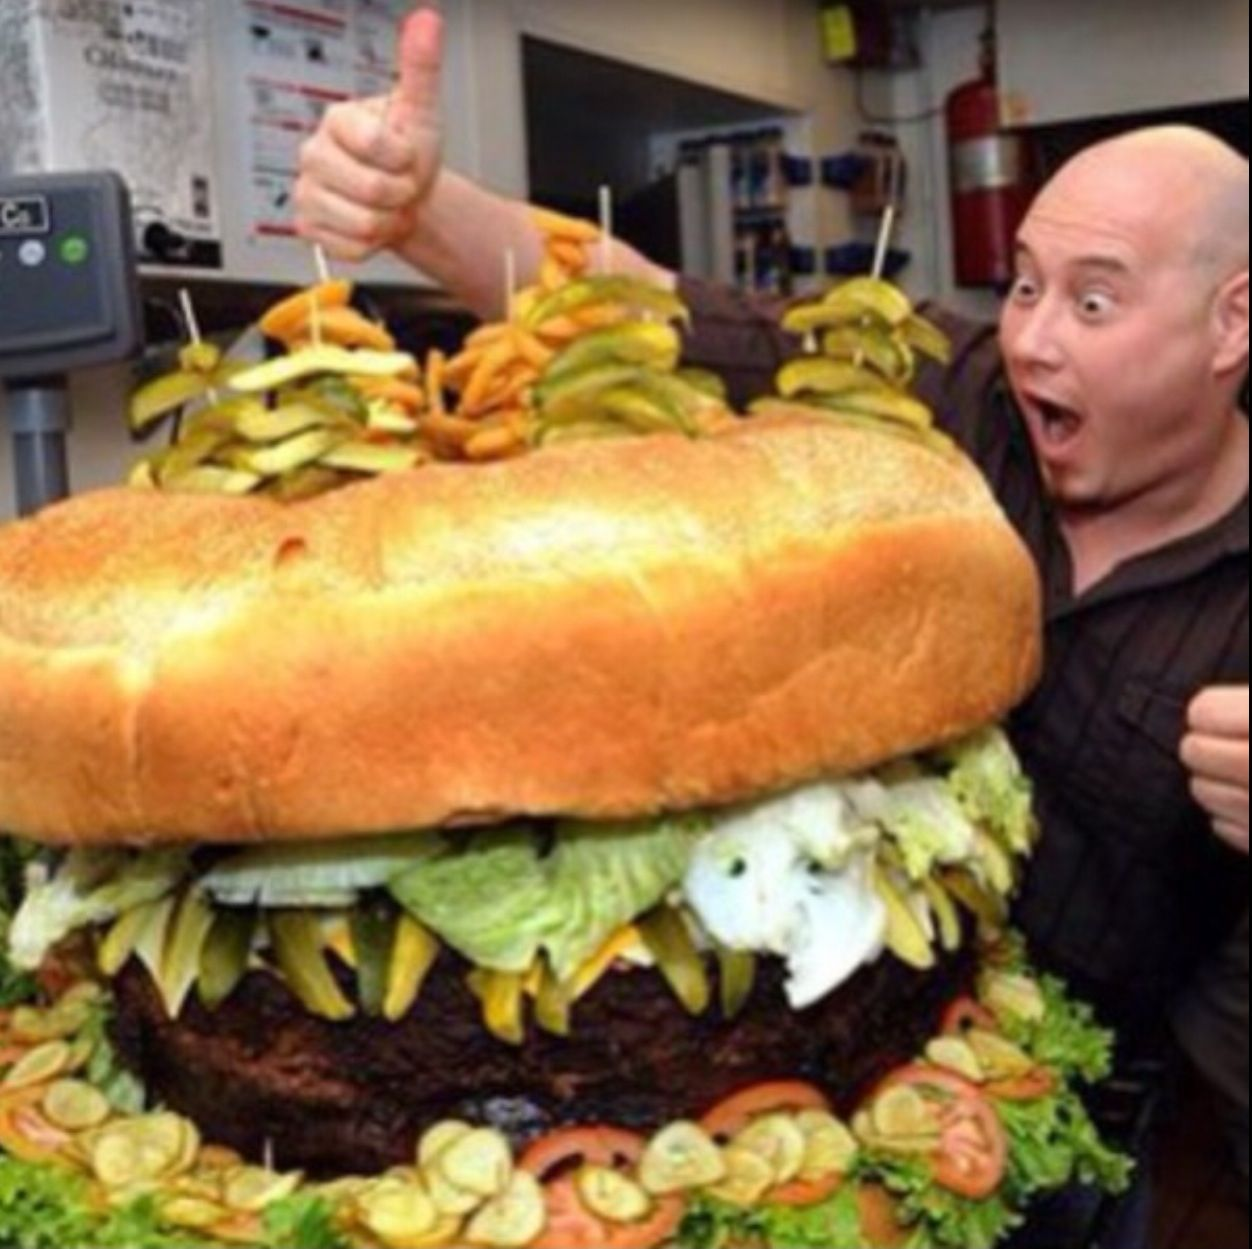 Largest hamburger | World Records | Big burgers, Big meals ...